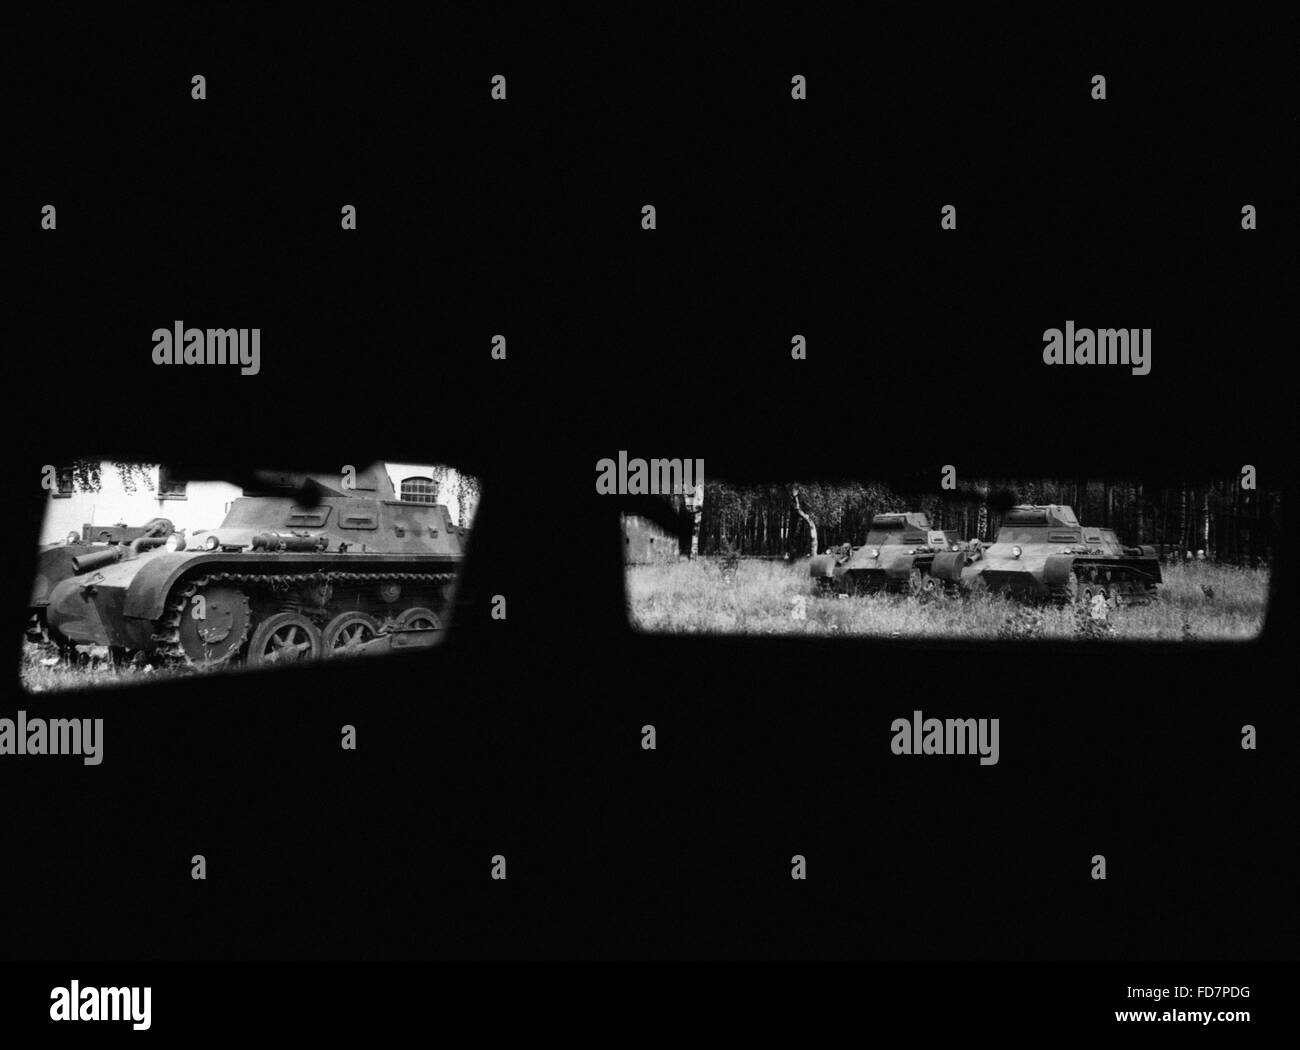 Looking through the eye slit of a Panzer I, 1935 - Stock Image